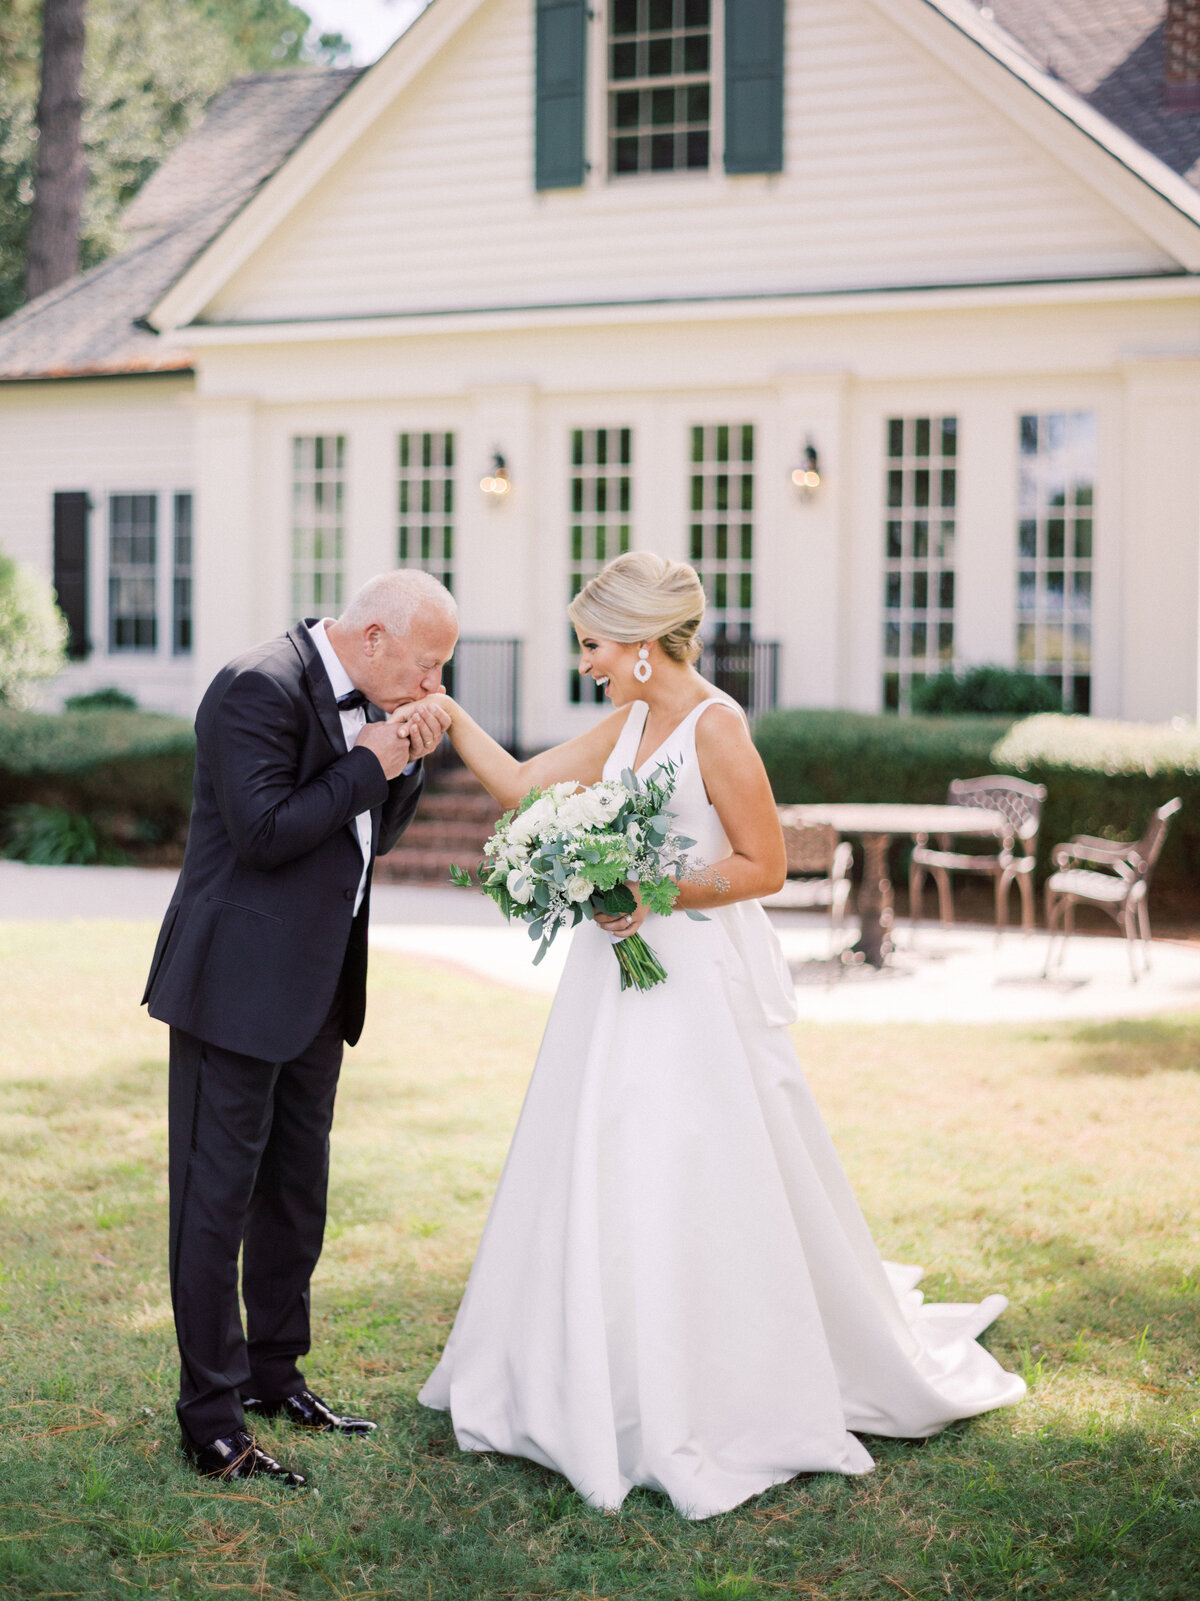 Belfair-Plantation-Bluffton-Hilton-Head-Island-Wedding-Philip-Casey-Photo-06